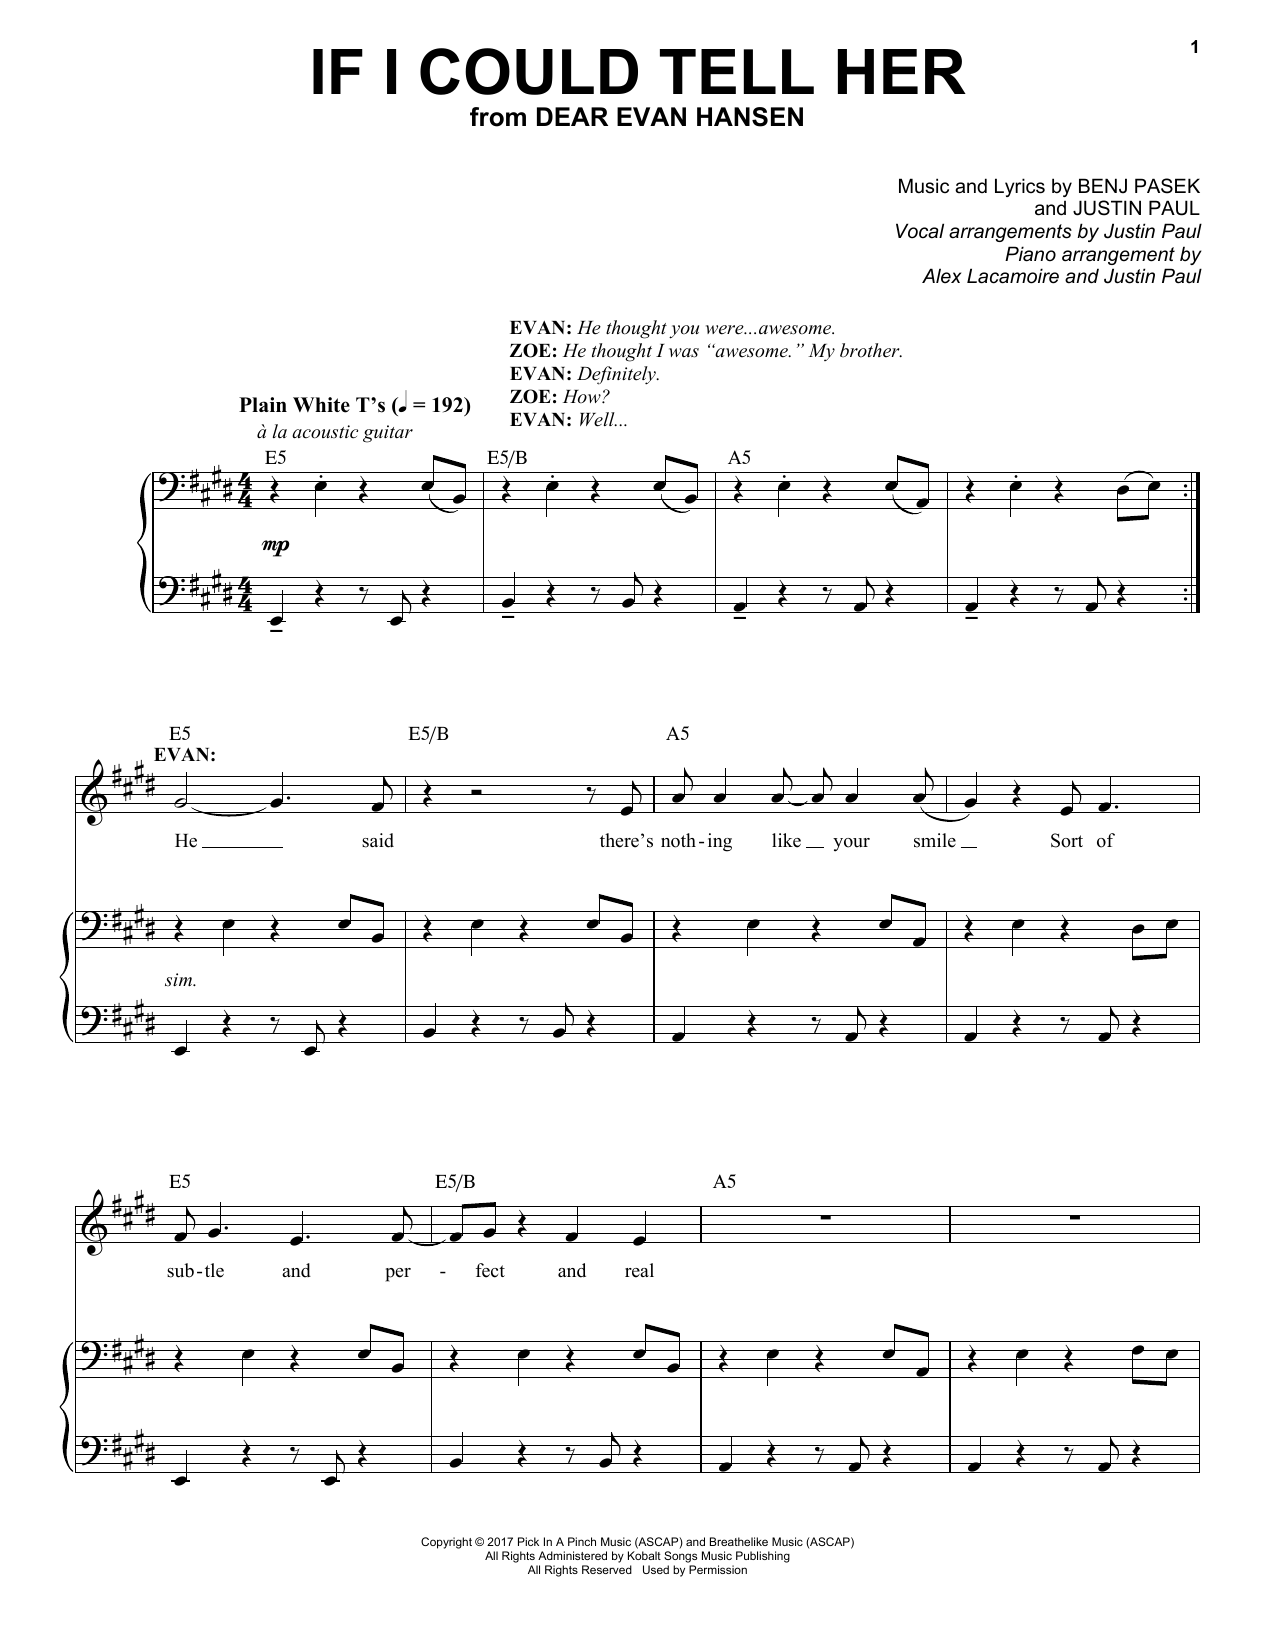 Pasek & Paul If I Could Tell Her (from Dear Evan Hansen) sheet music notes and chords. Download Printable PDF.